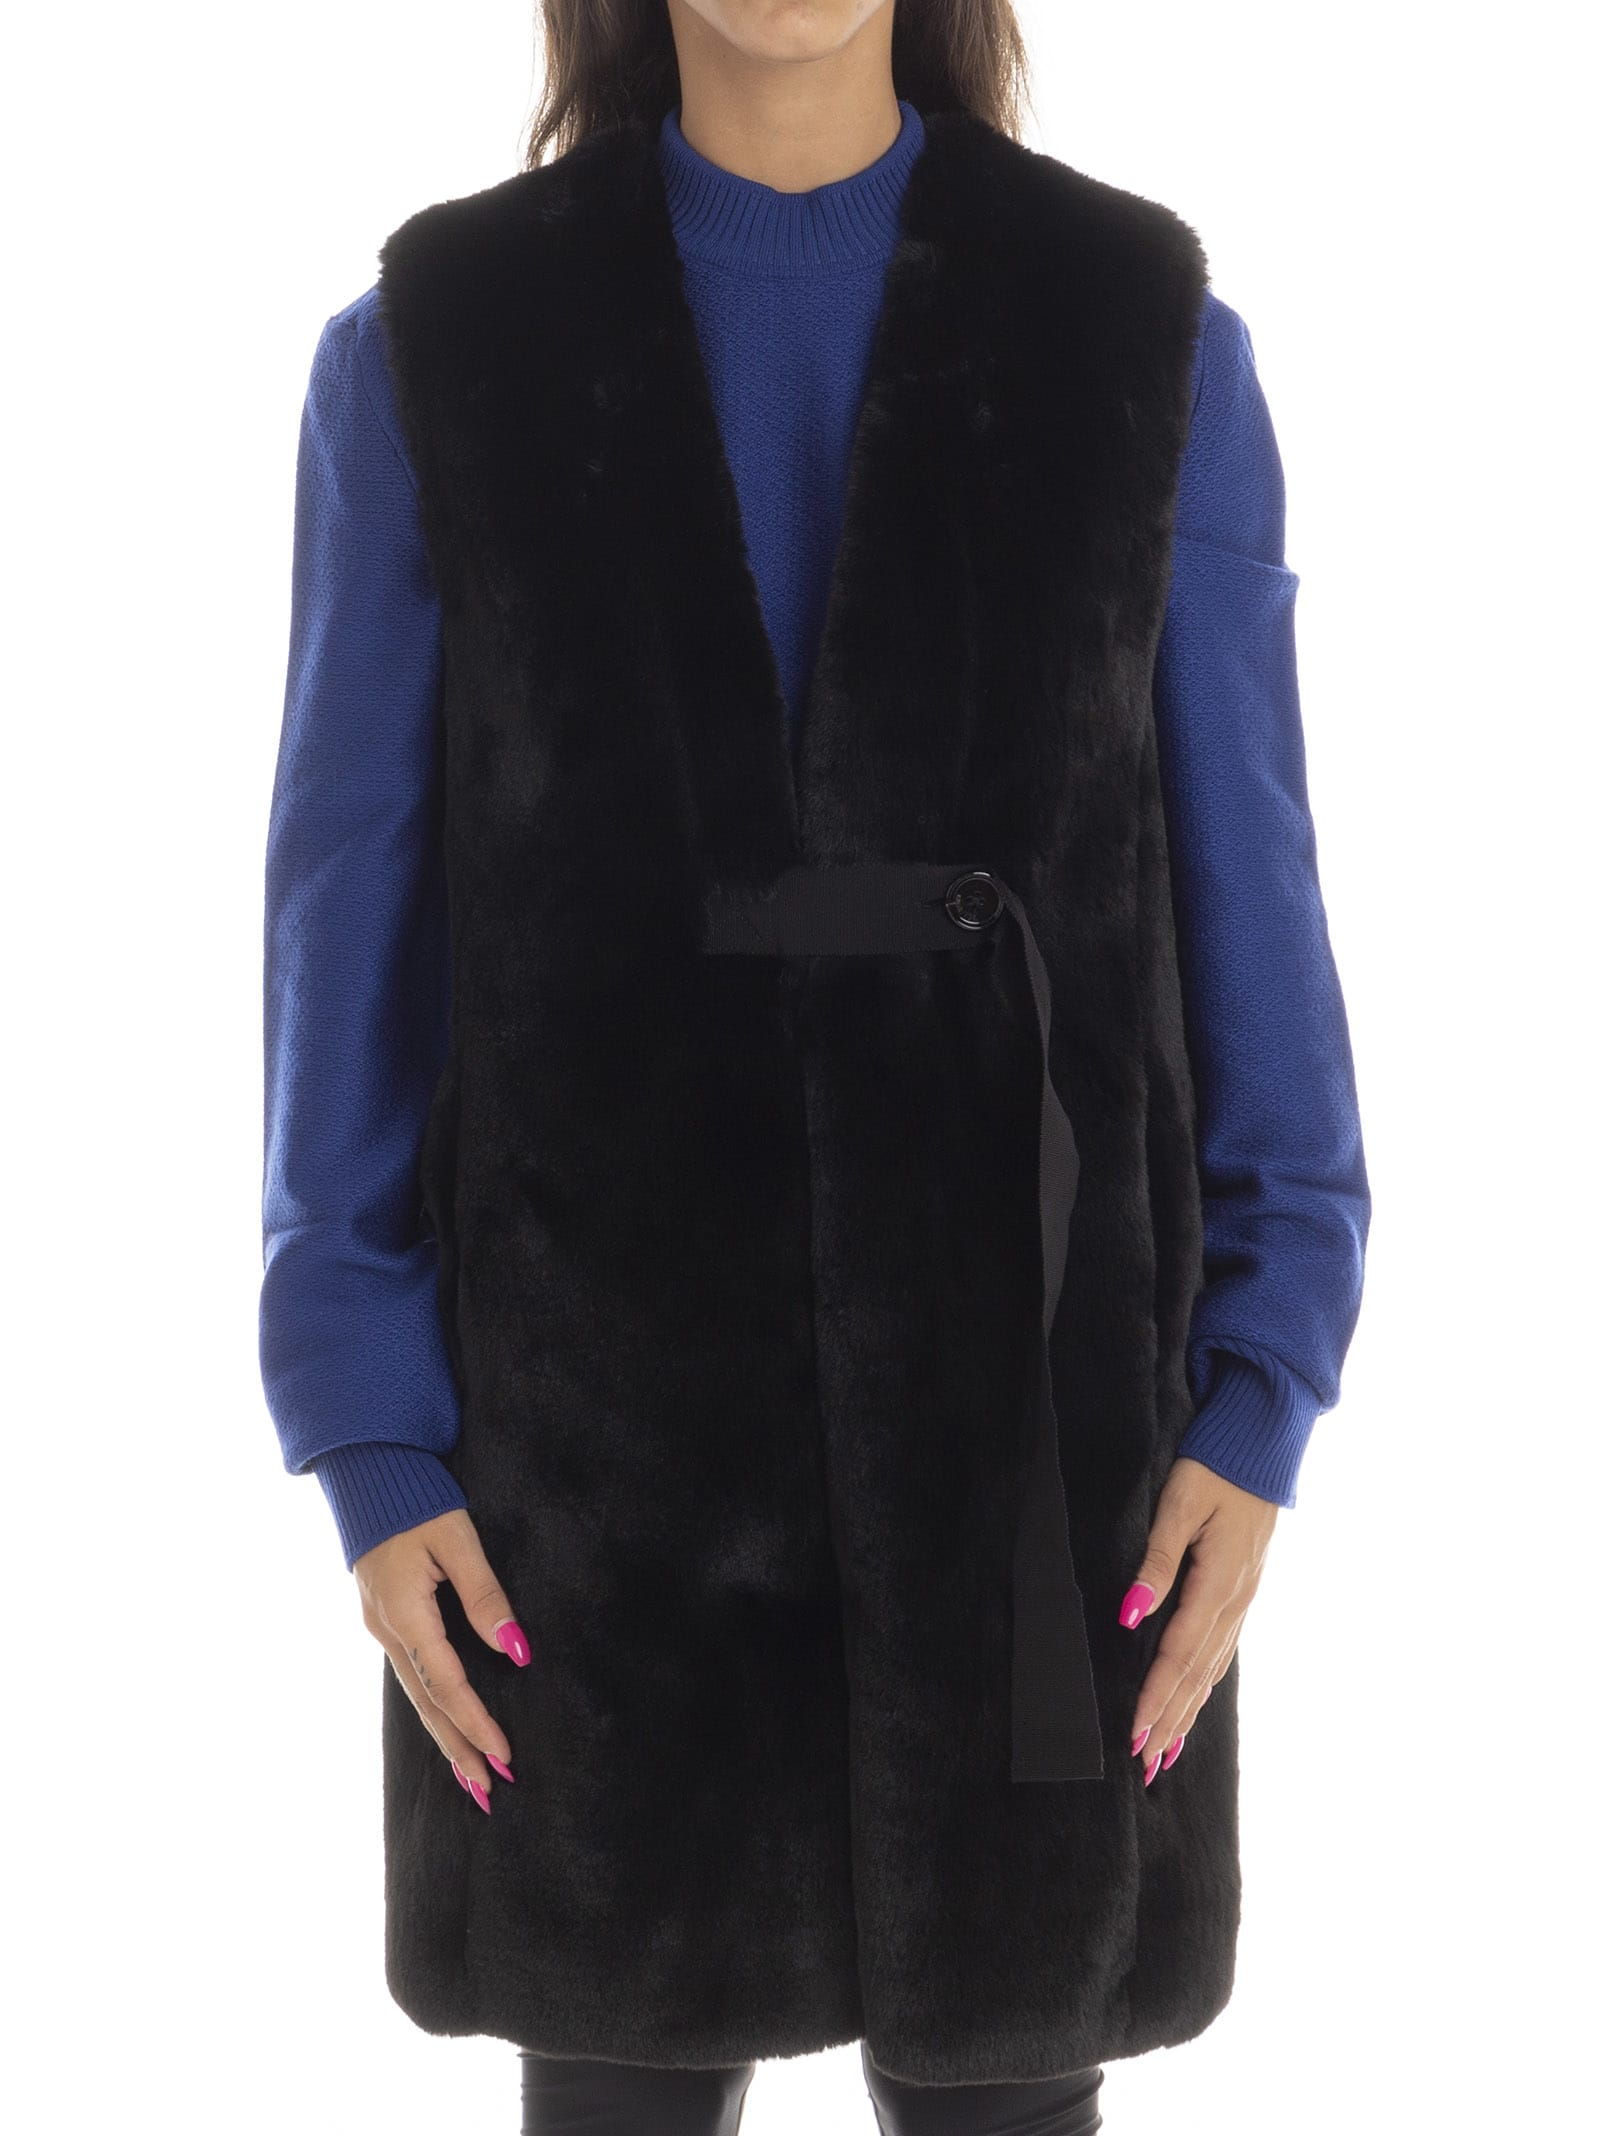 Golden Goose Fur Vest Aiko